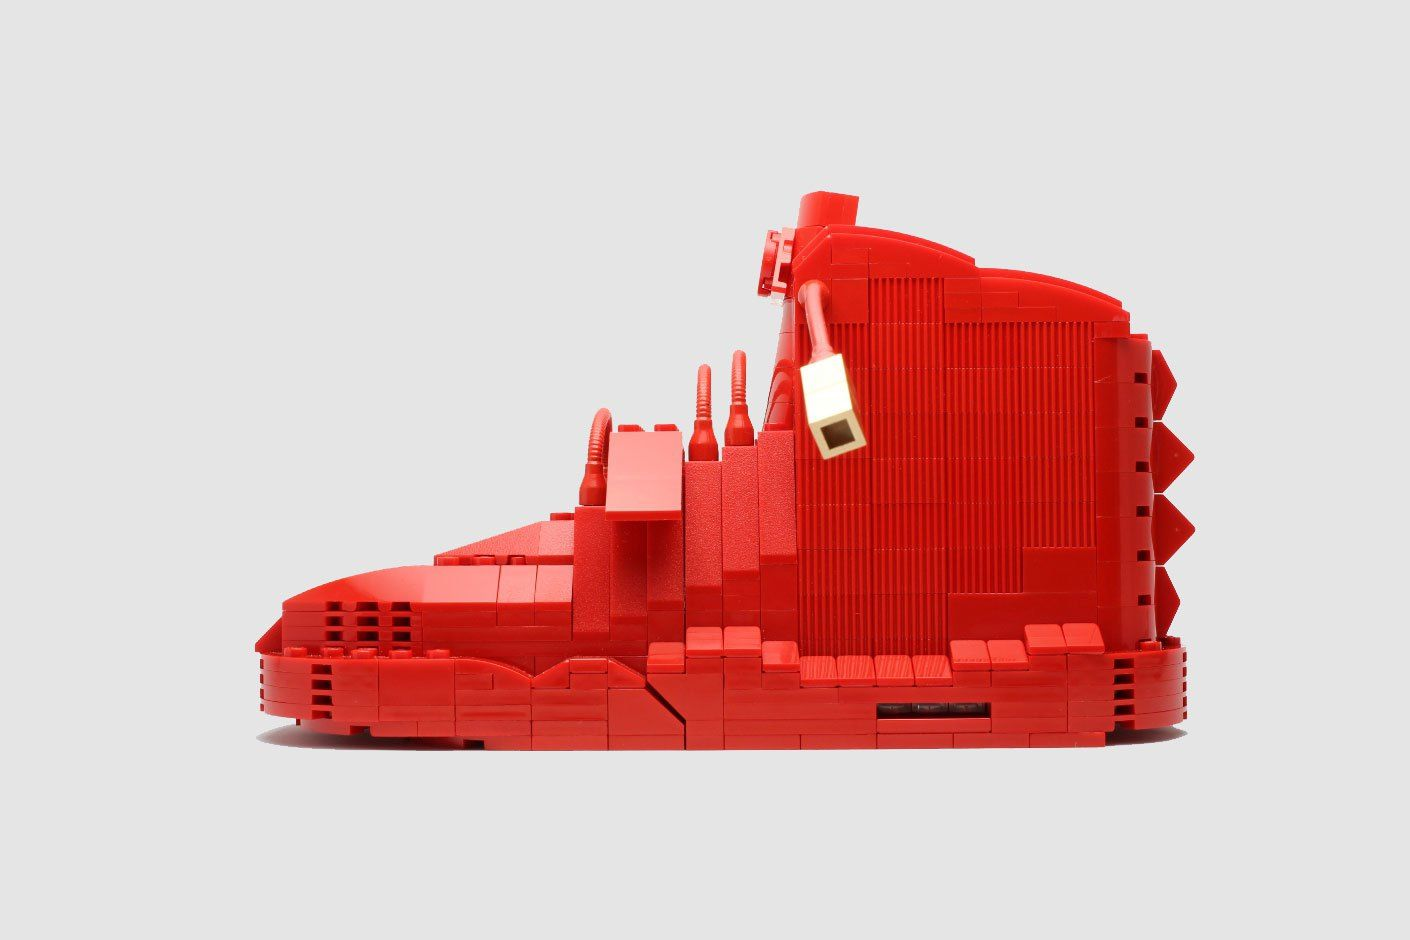 You Can Now Purchase Your Own Lego Sneaker Collectible Sneaker Art Lego Sneakers Illustration